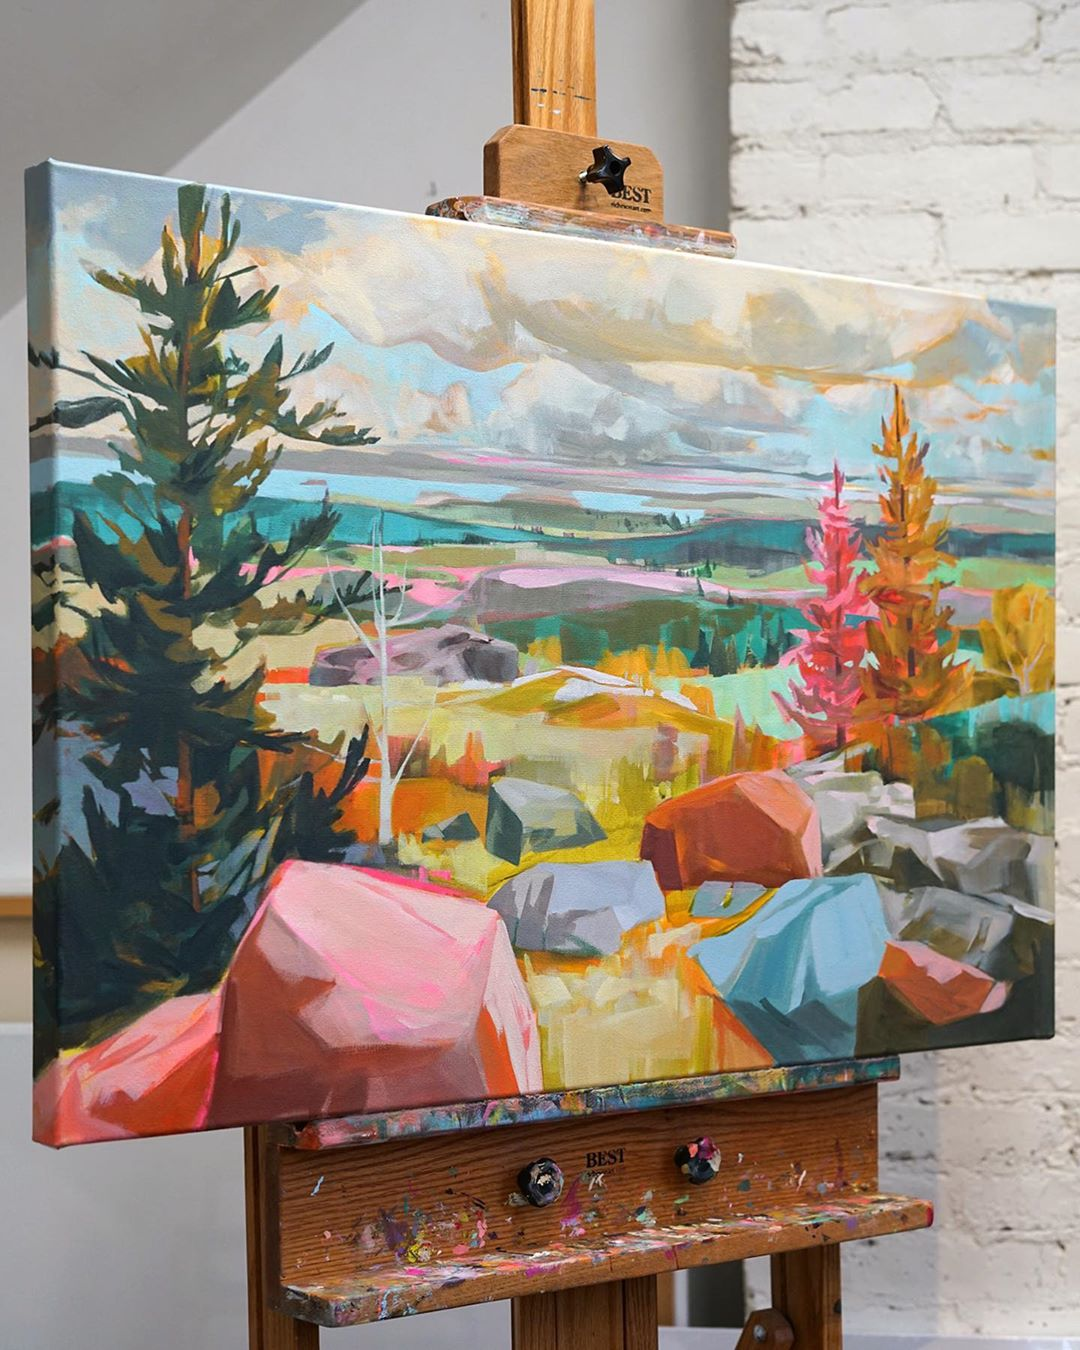 Contemporary Landscape Painting by Jess Franks